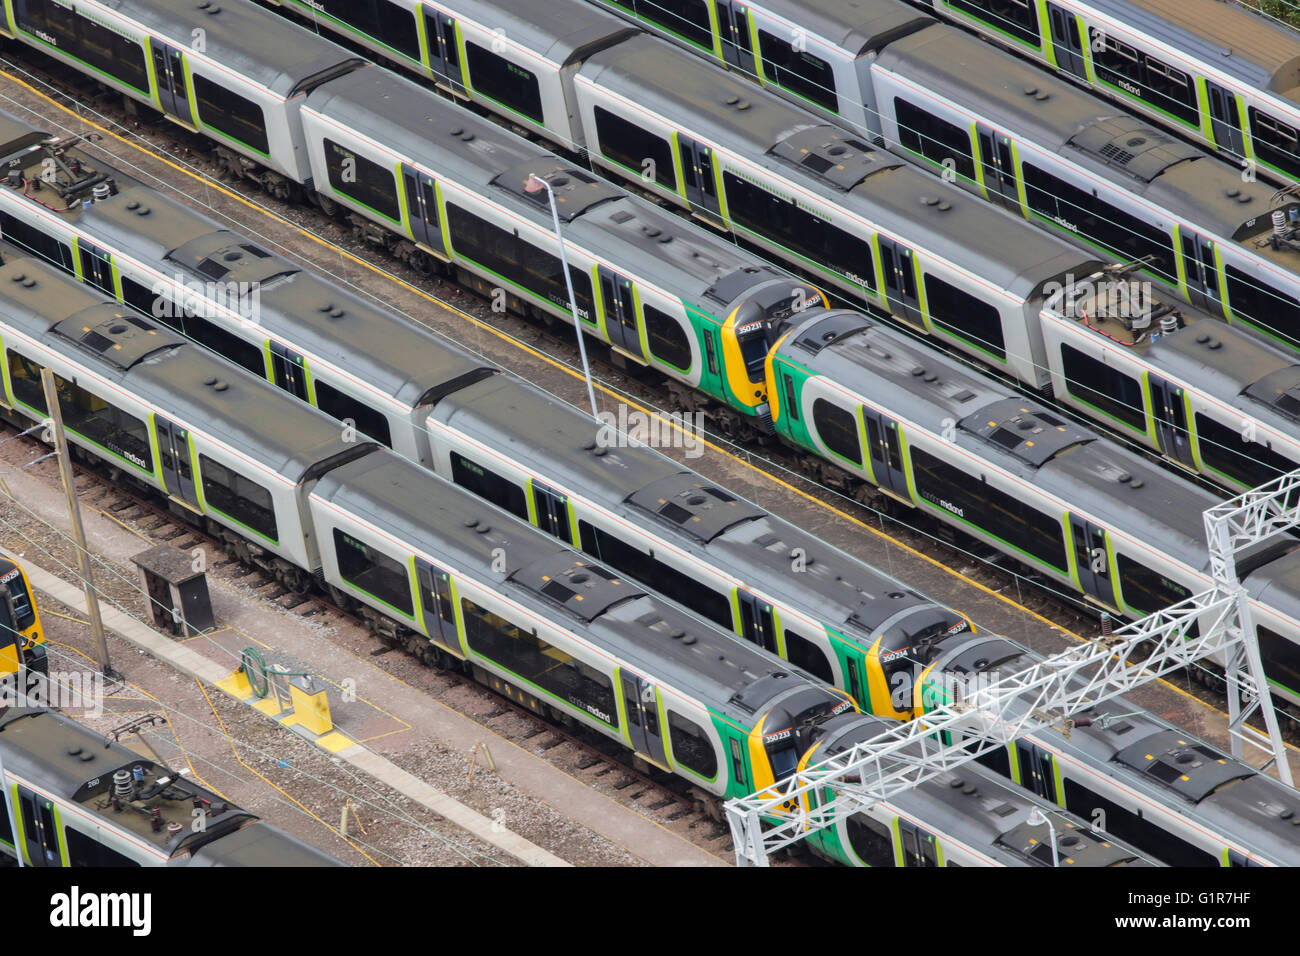 An aerial view of trains parked in a railway siding - Stock Image